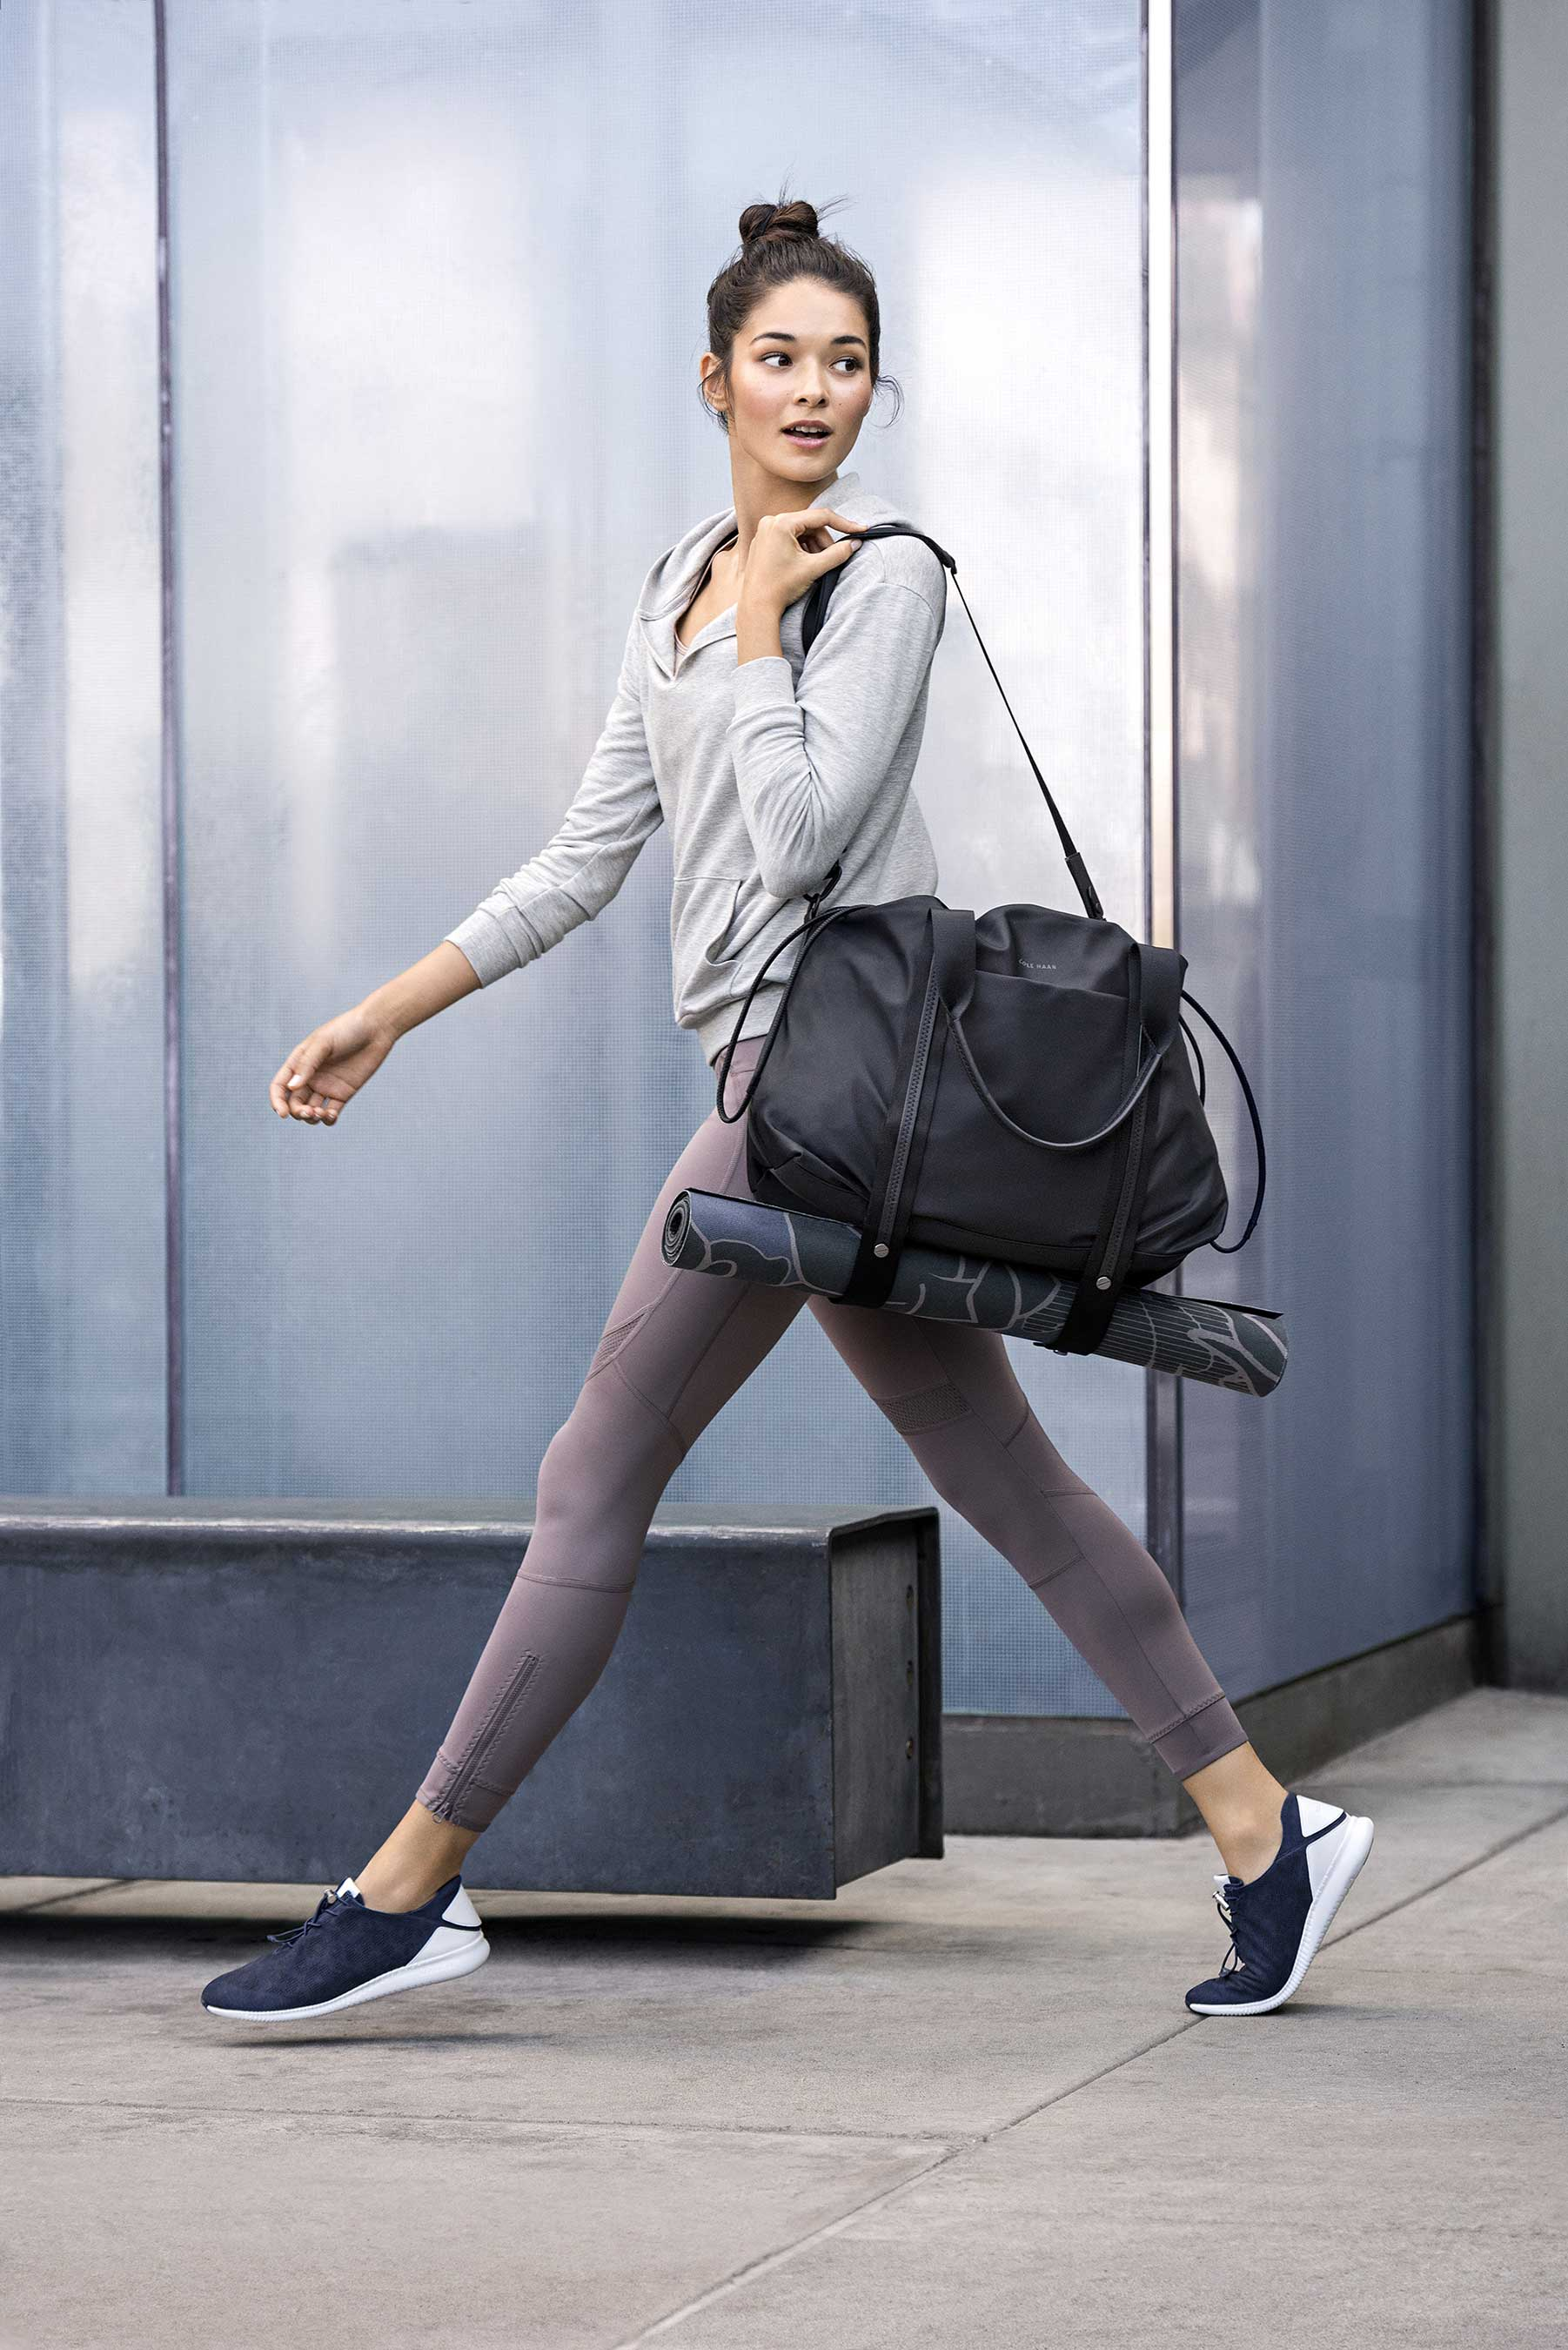 cole-haan-studiogrand-pack-go-trainer-in-marine-blue-duffle-and-prana-yoga-mat